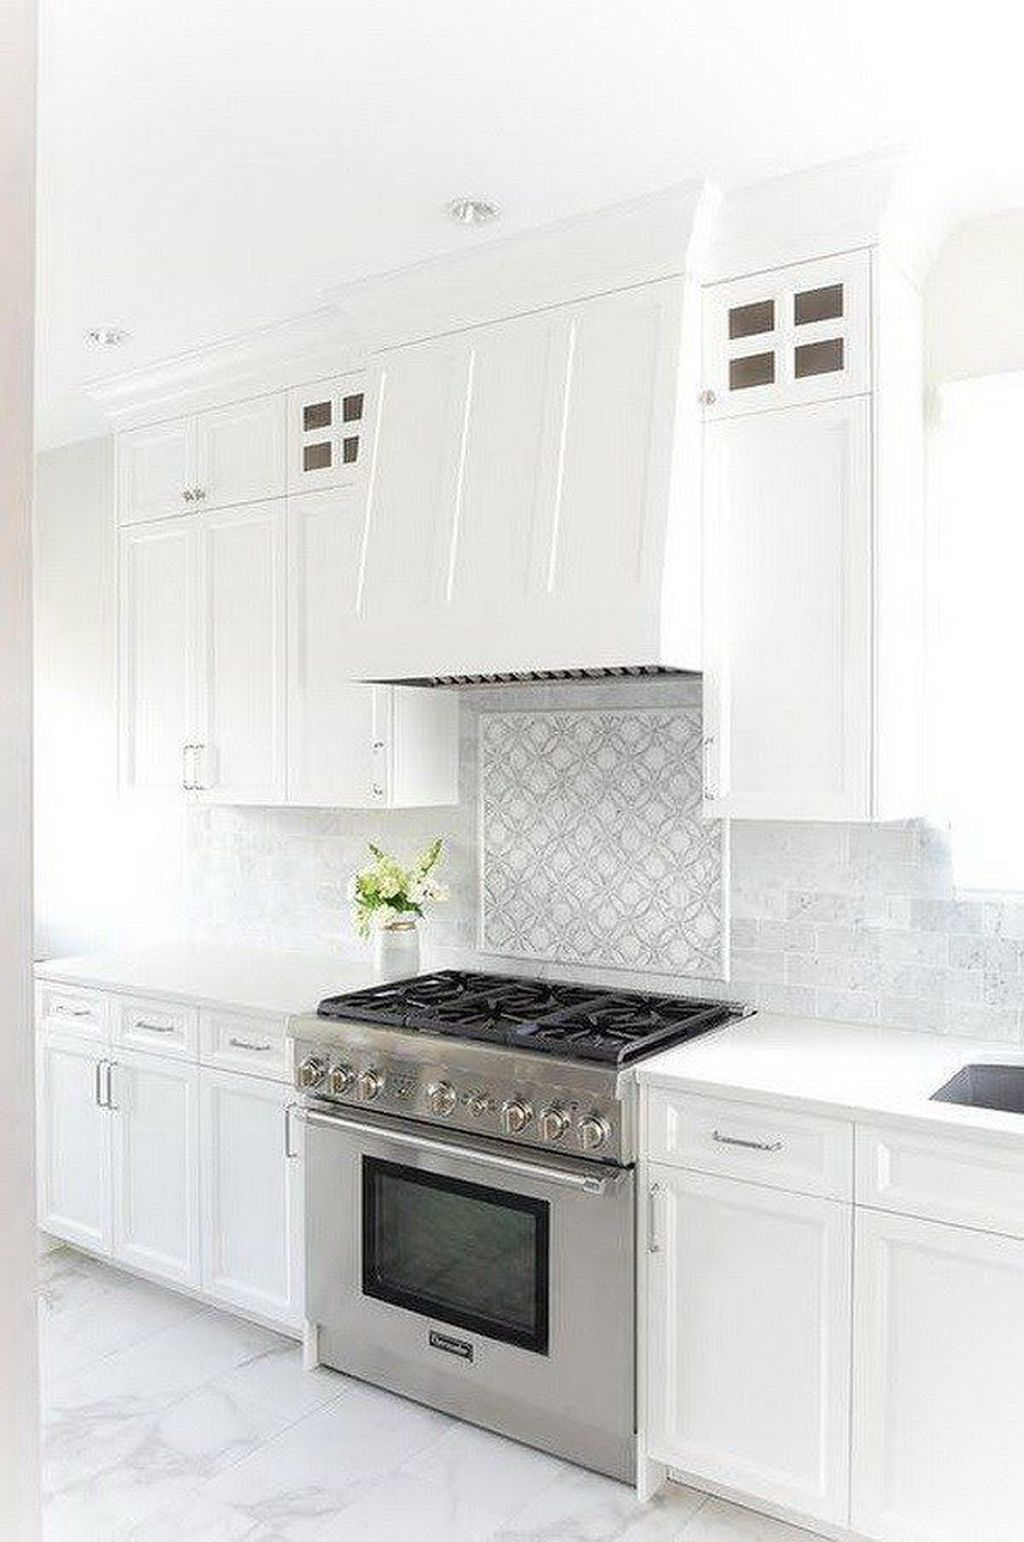 Awesome Creative Kitchen Backsplash Ideas 25